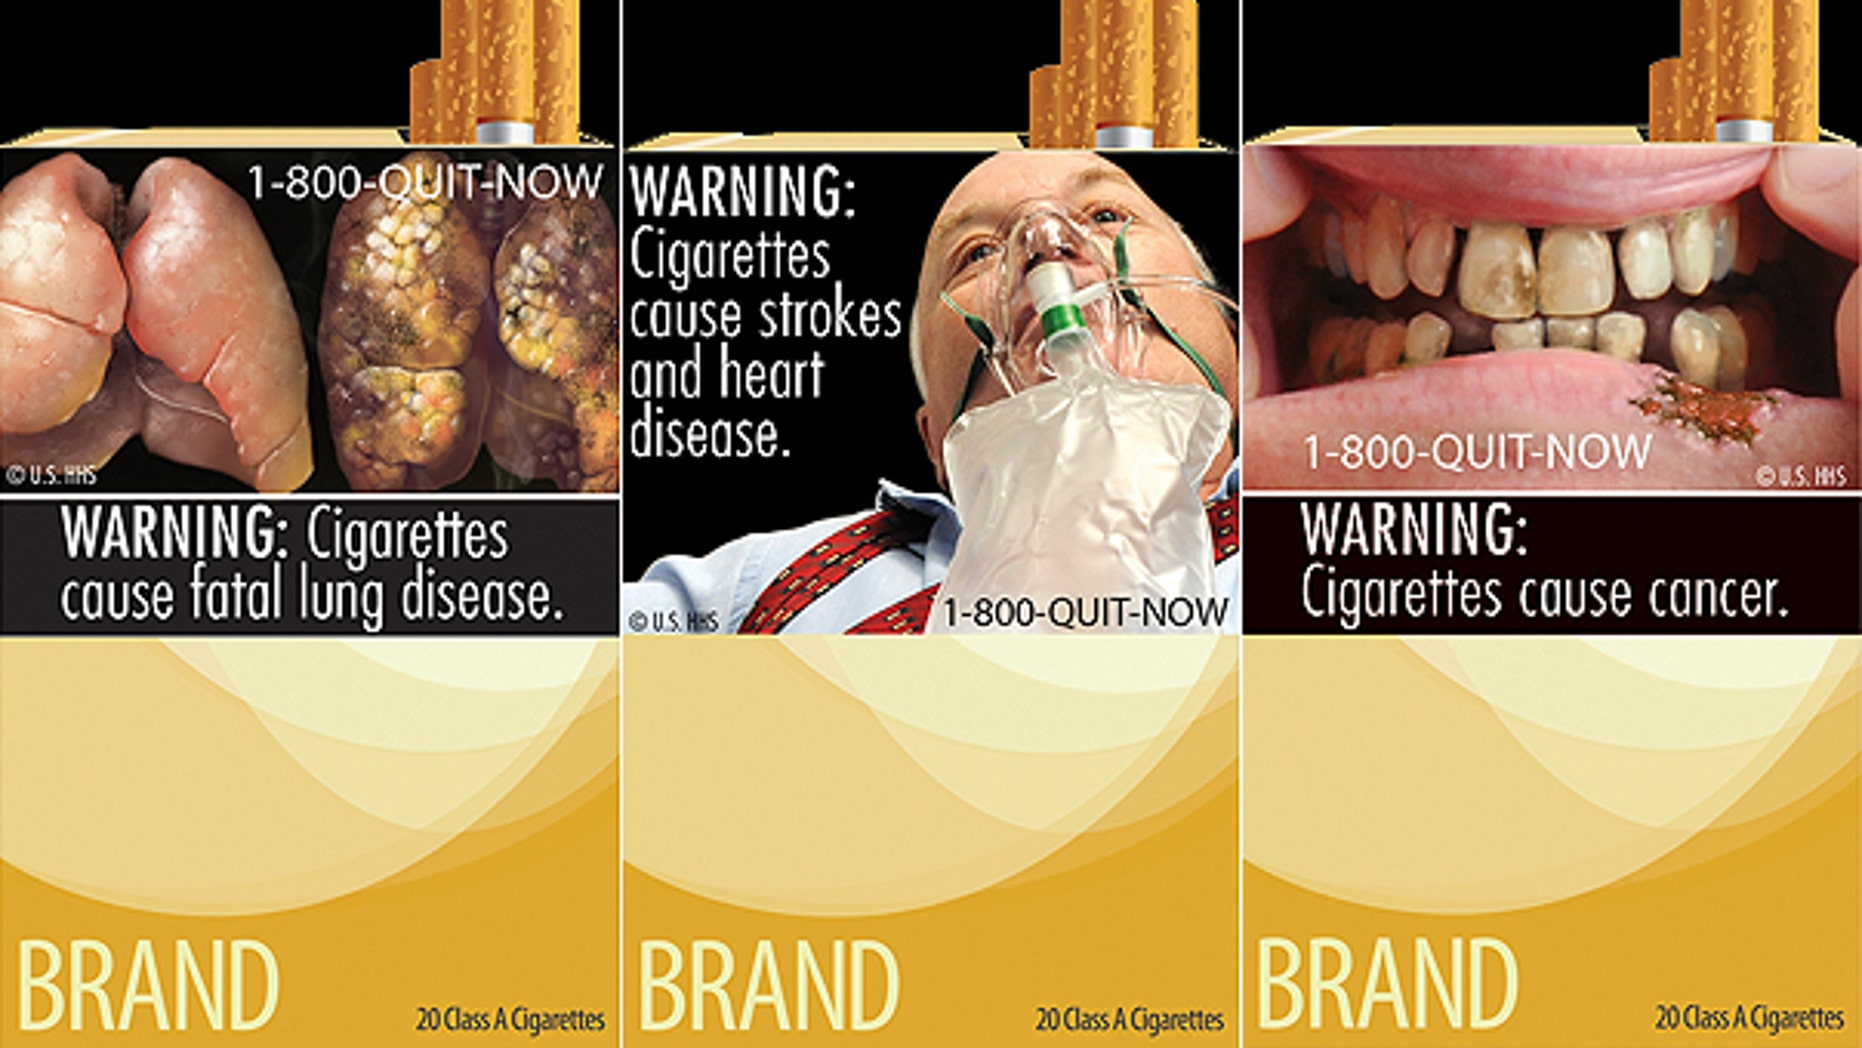 This composite image shows three of the FDA's new warning labels for cigarette packages.